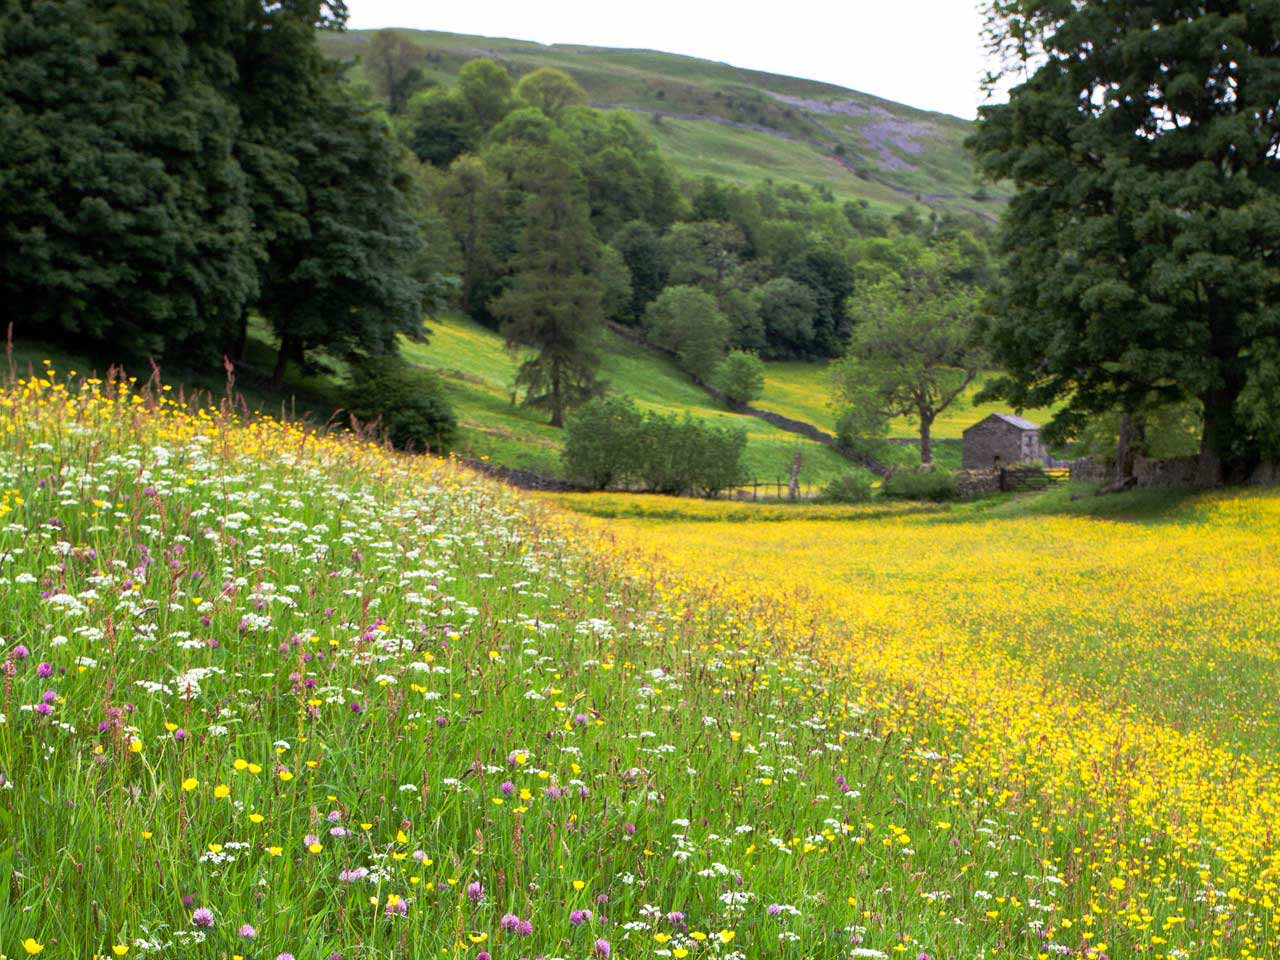 Wildflowers in Muker, Yorkshire